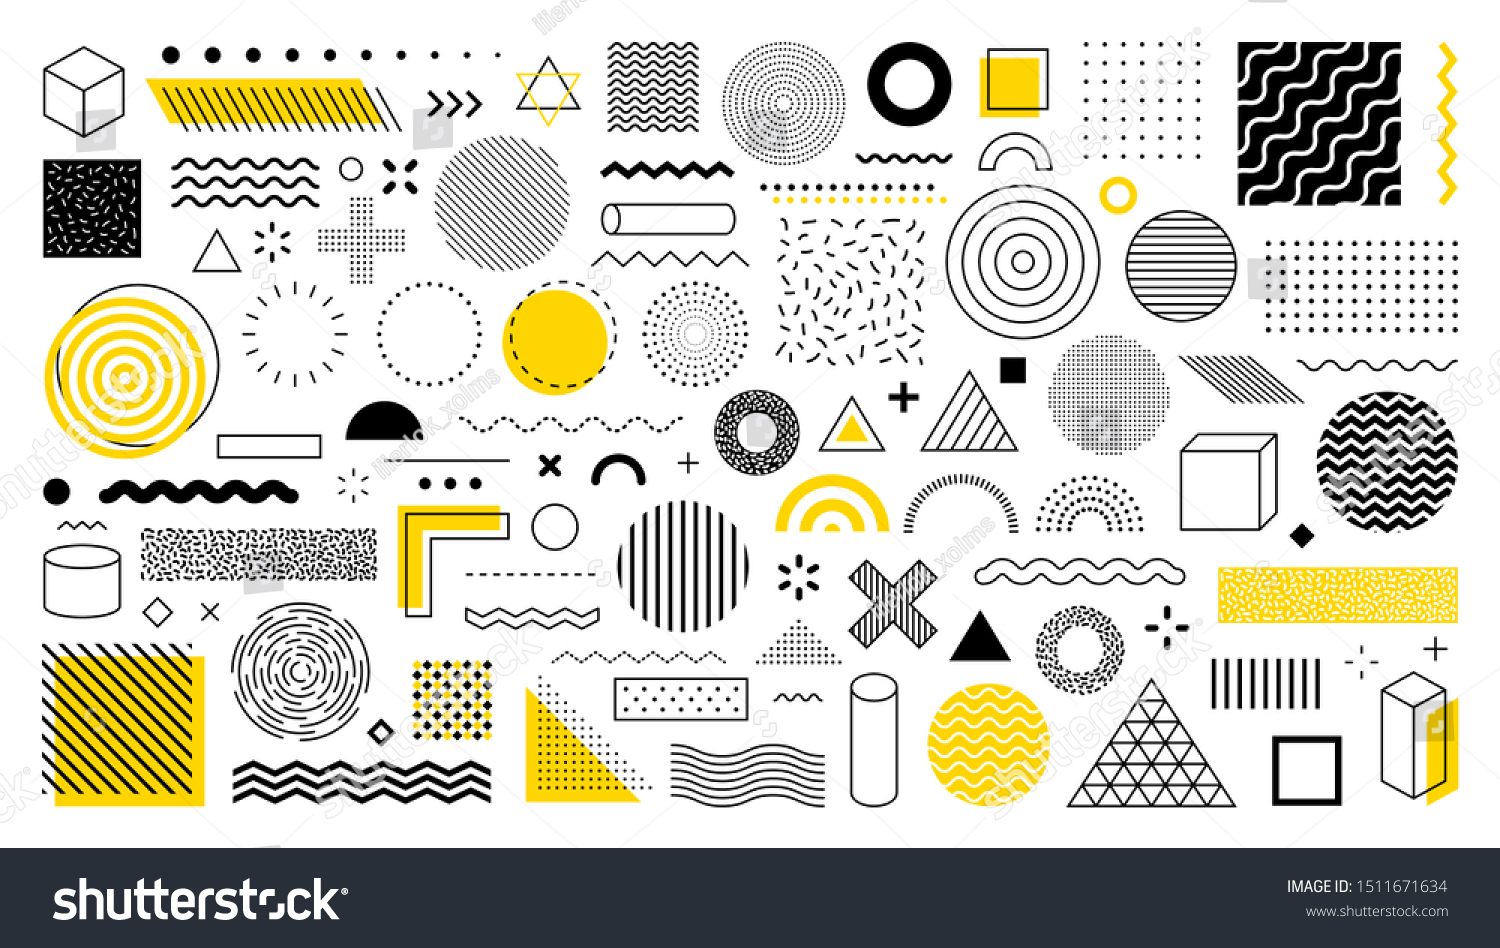 Set of 100 geometric shapes. Memphis design, retro elements for web, vintage, advertisement, commercial banner, poster, leaflet, billboard, sale. Collection trendy halftone vector geometric shapes. #1511671634